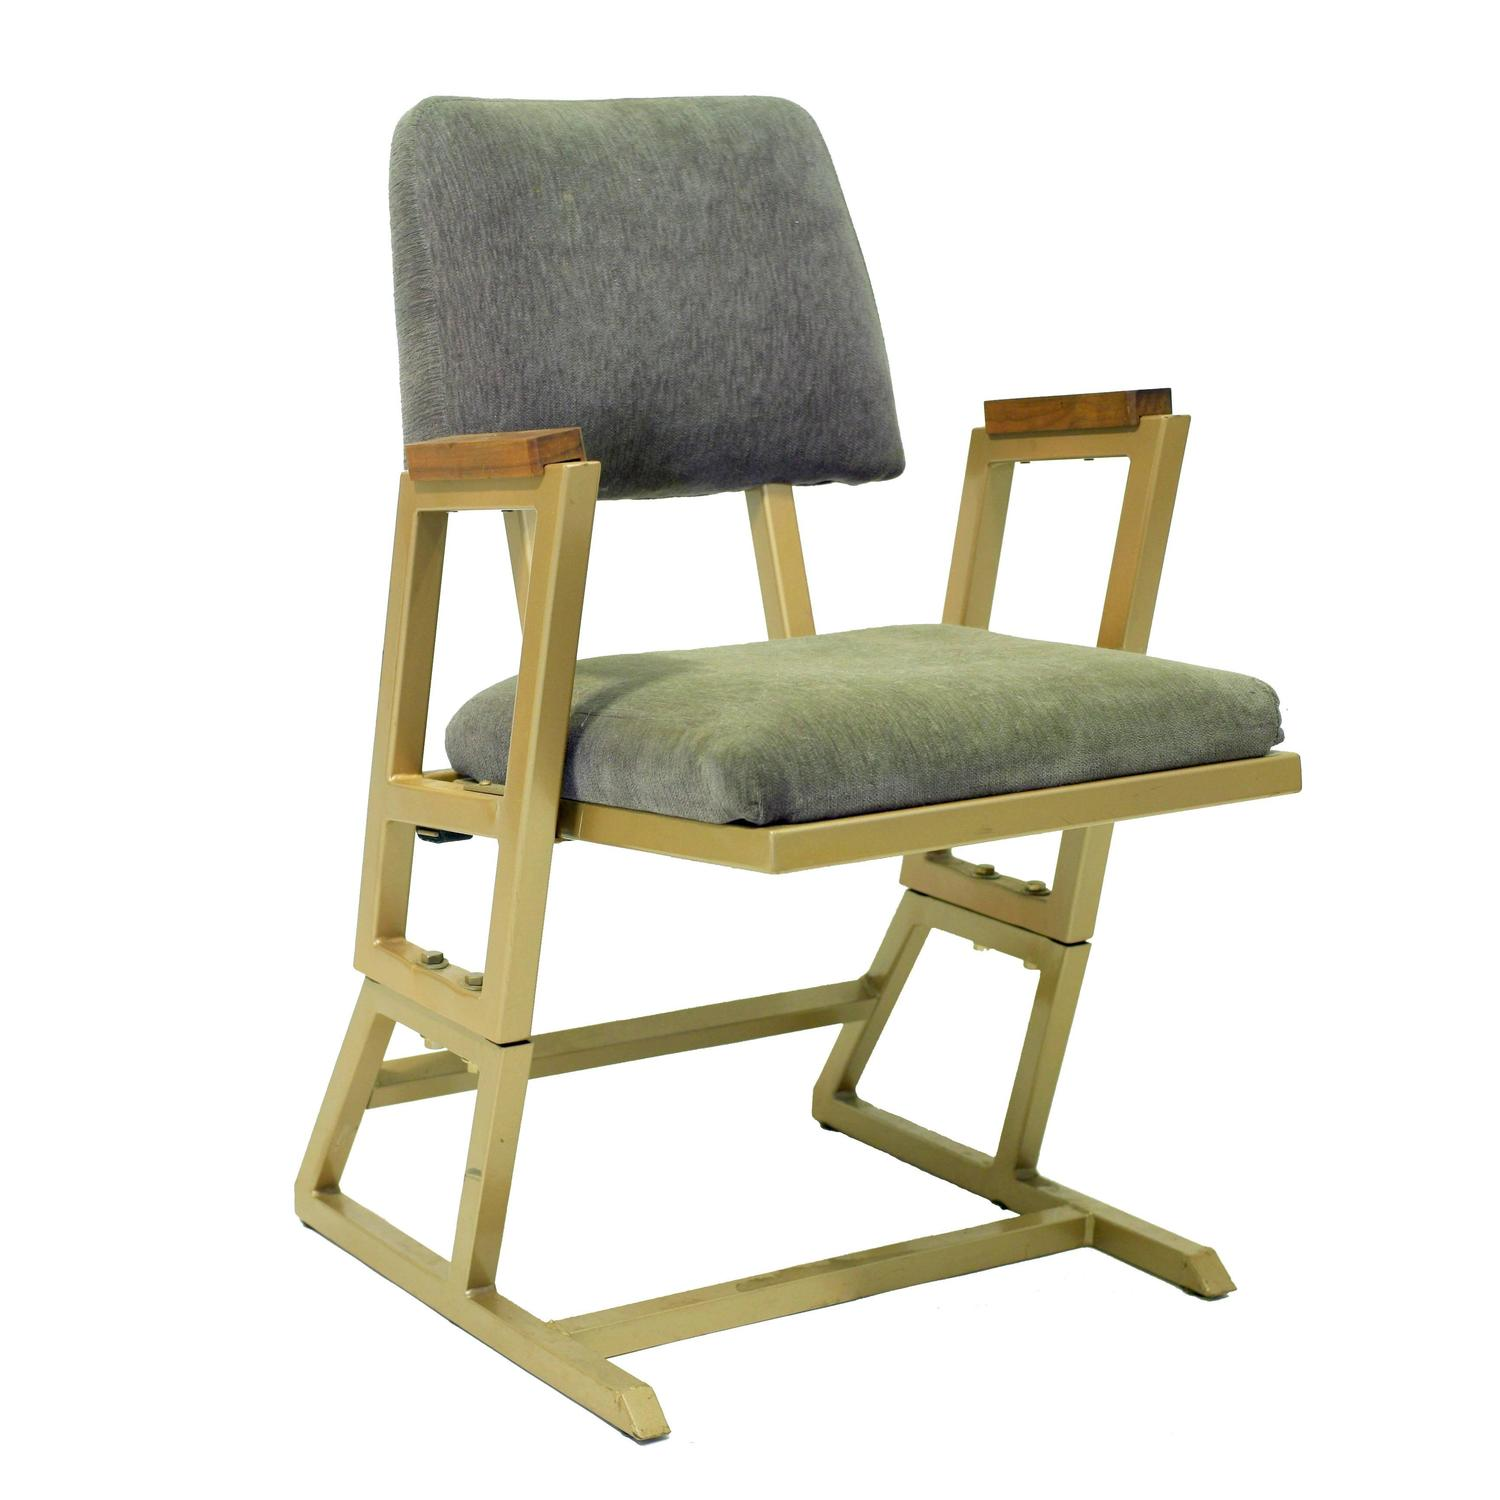 Beau Frank Lloyd Wright Kalita Humphreys Theater Chair For Sale At 1stdibs